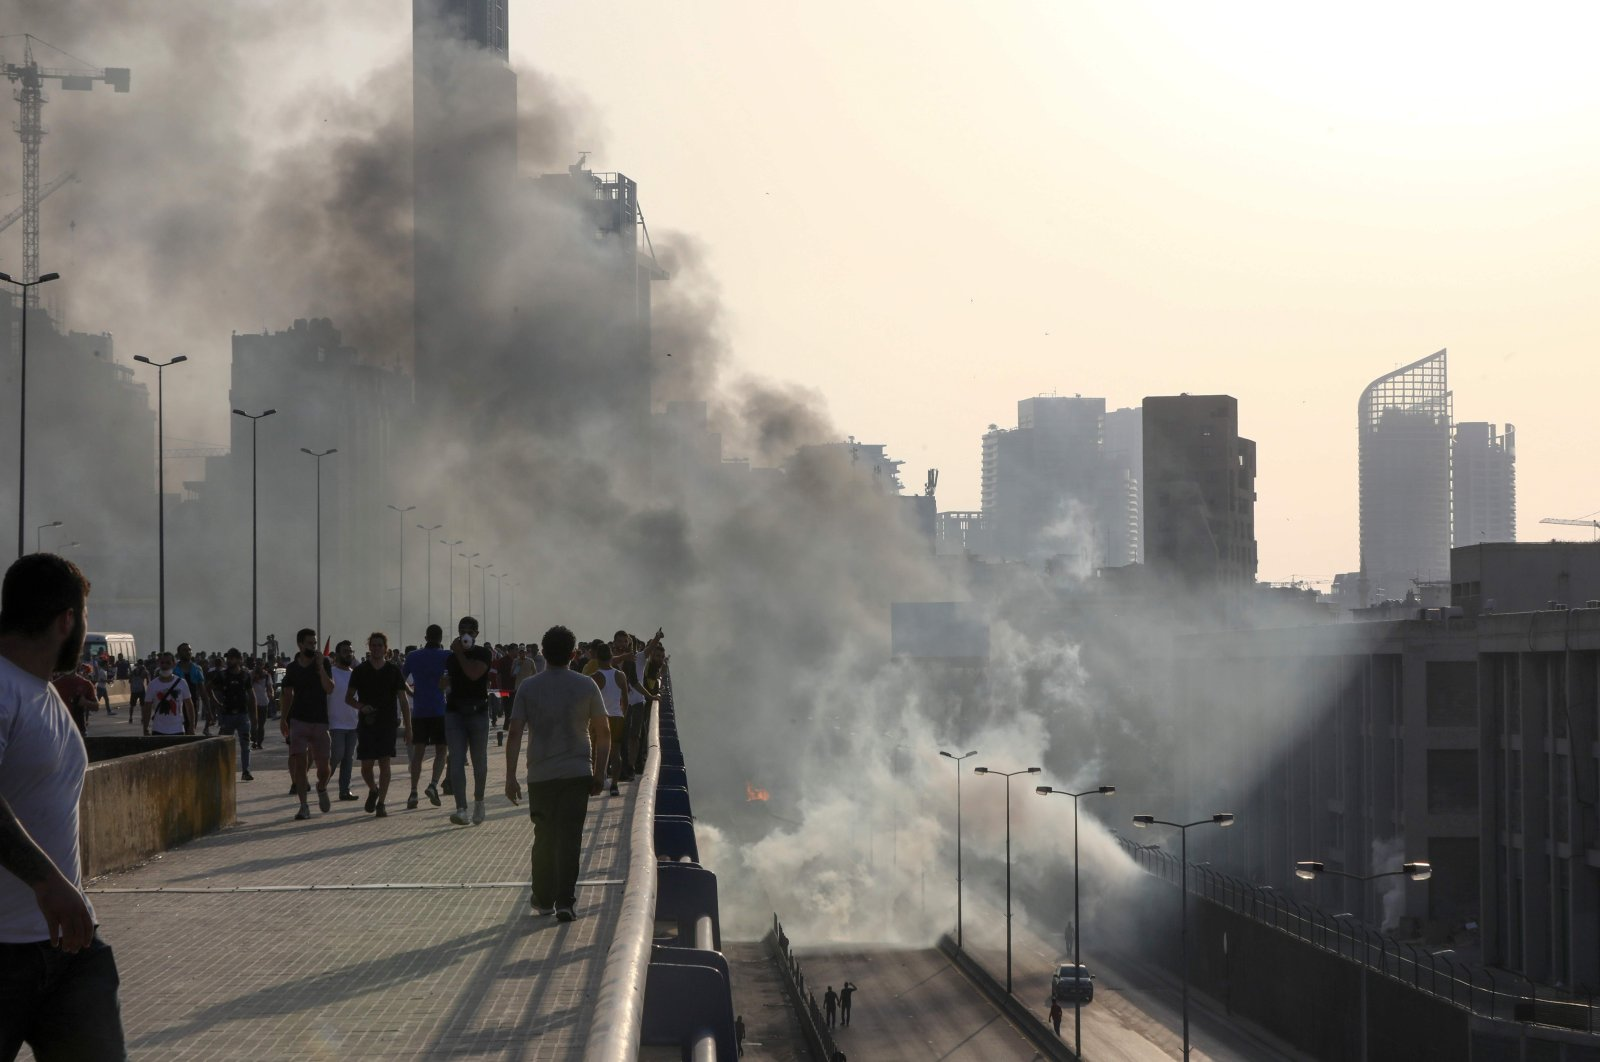 Lebanese protesters walk away from tear gas fired by riot police amid clashes following a demonstration in central Beirut on June 6, 2020. (AFP Photo)